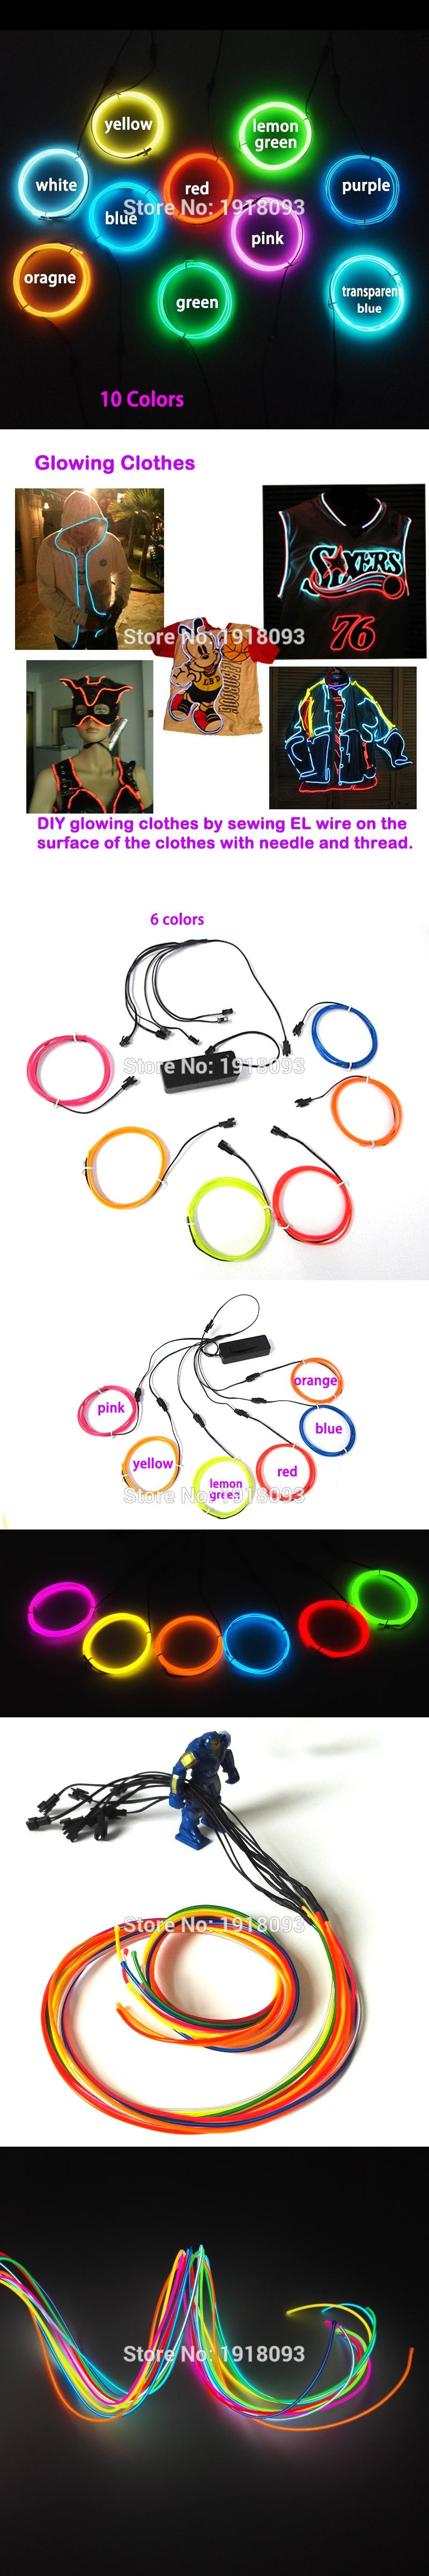 With Diy Led Strip Toysclothingelectrical Appliances Decor 23mm How To Build Multicolor Hd 1m 6pieces